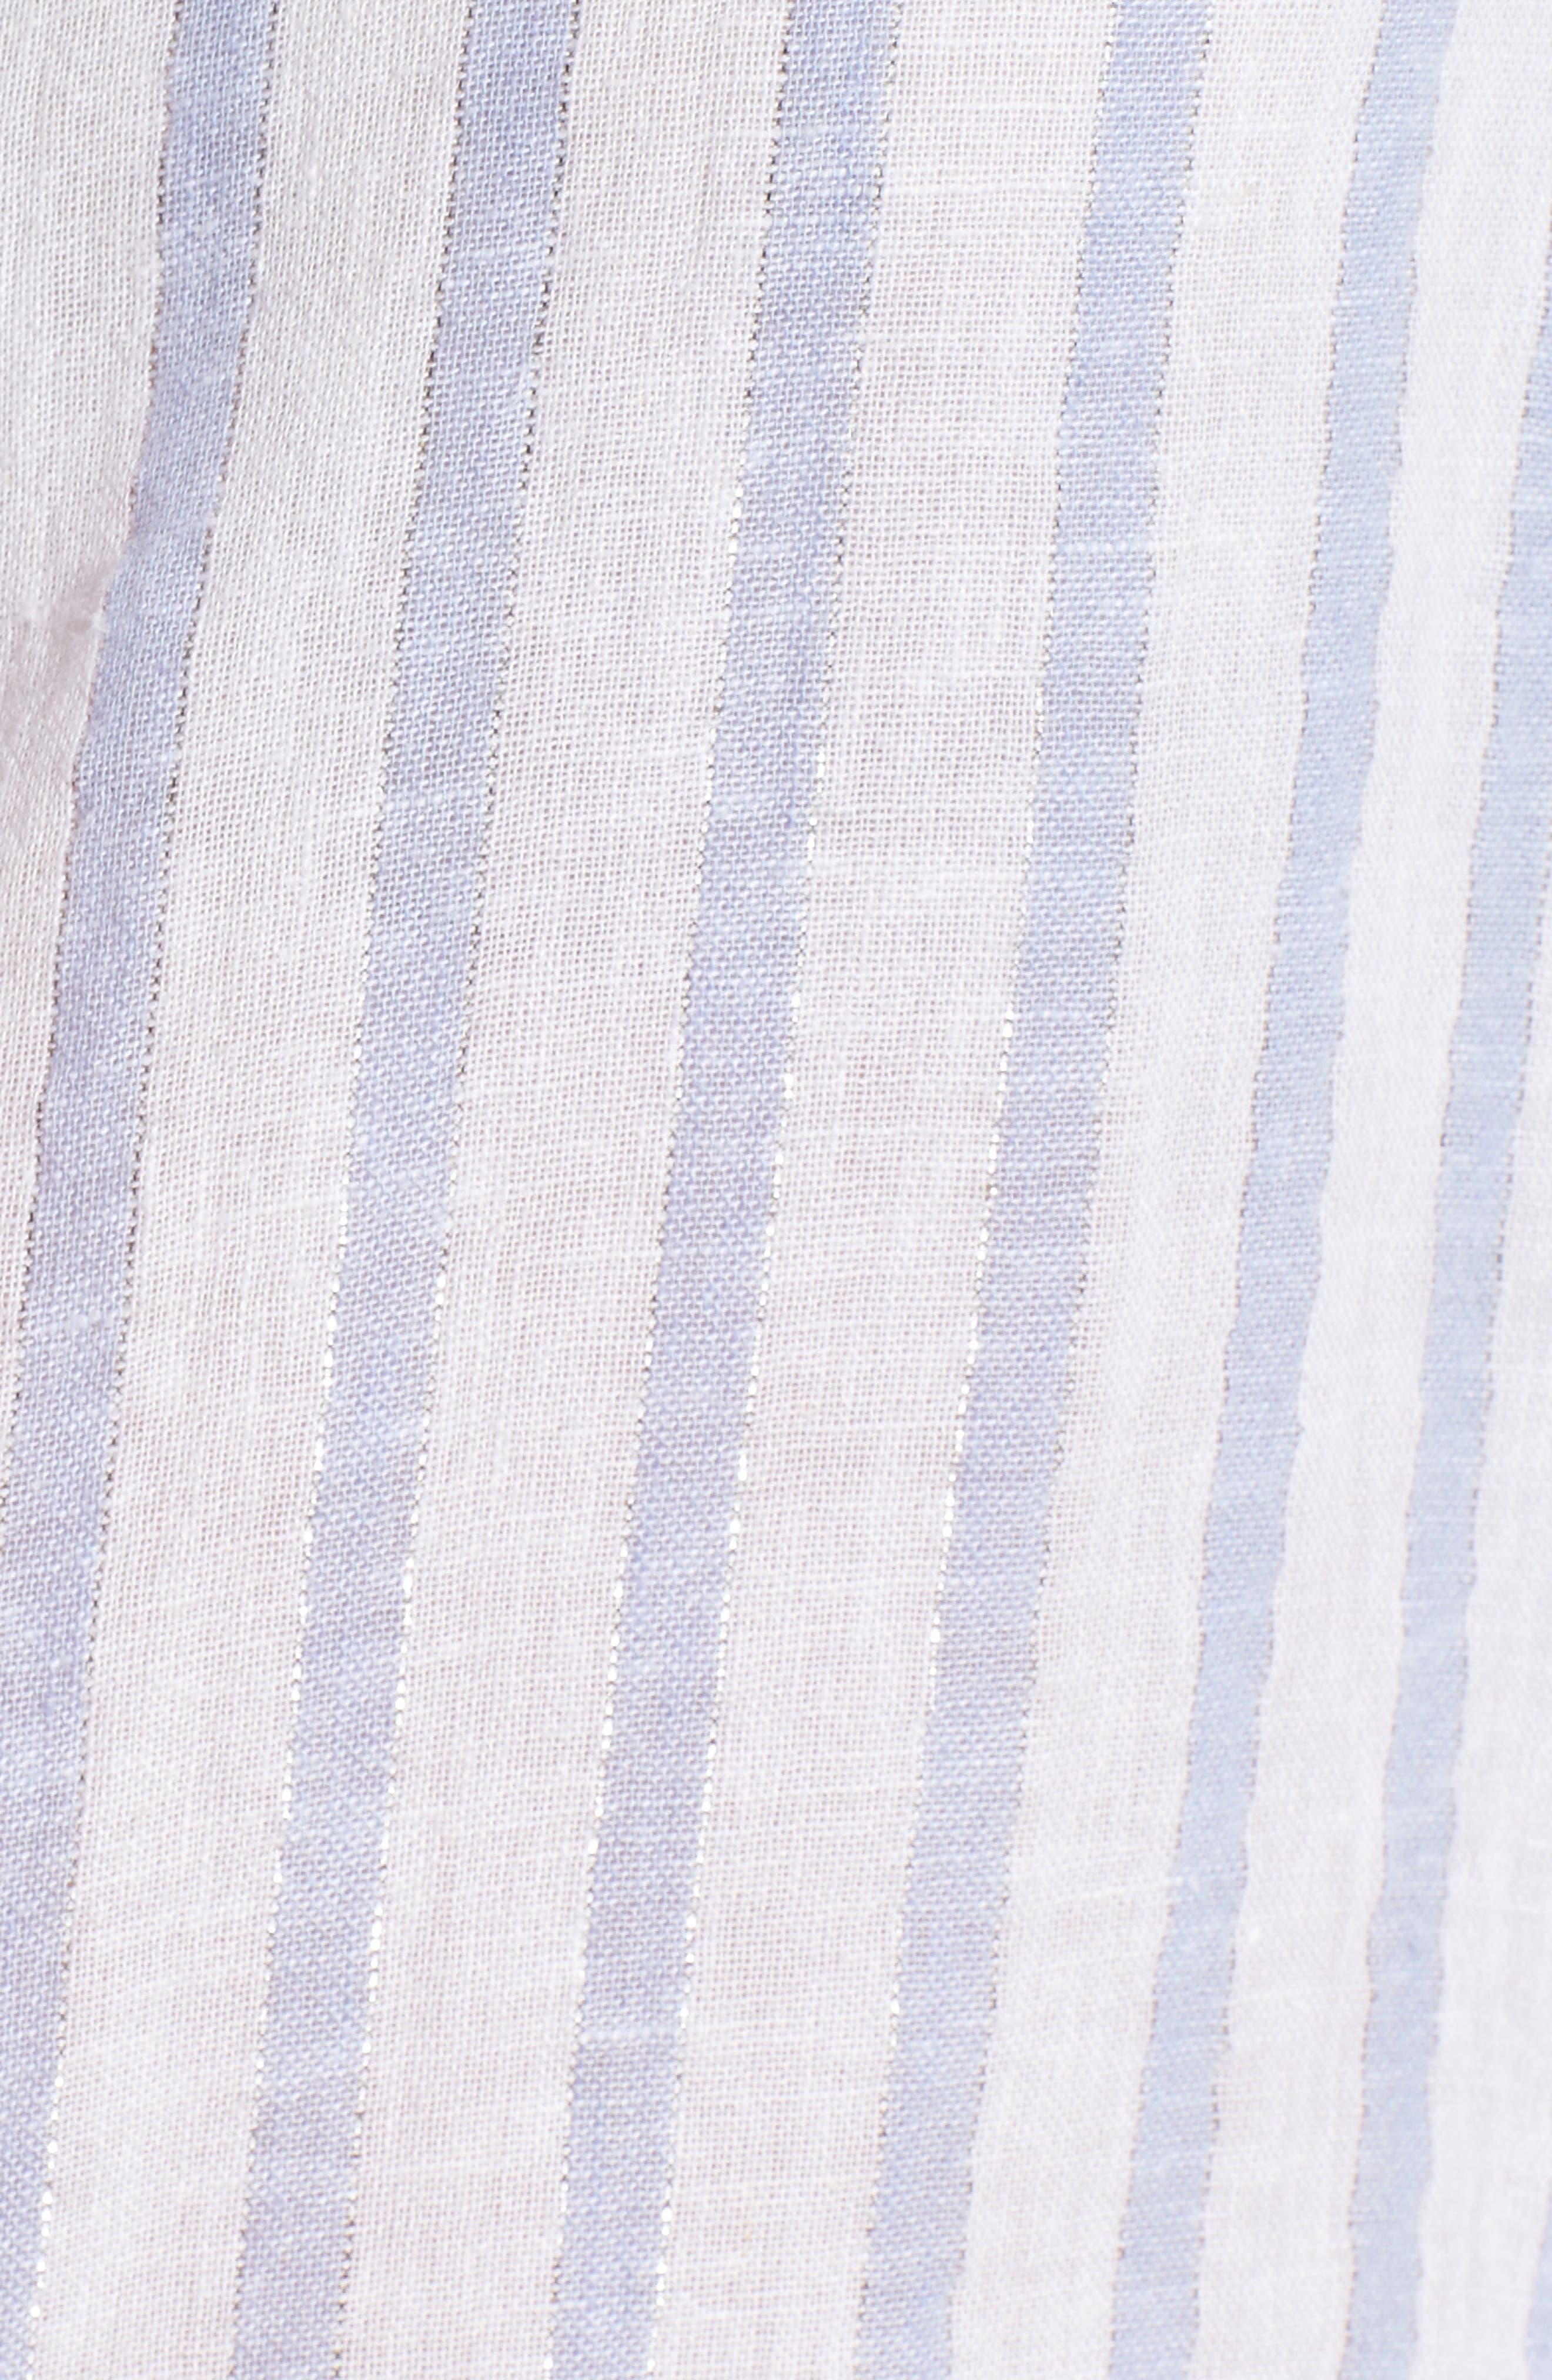 Sydney Vertical Shimmer Stripe Linen Blend Shirt,                             Alternate thumbnail 5, color,                             473